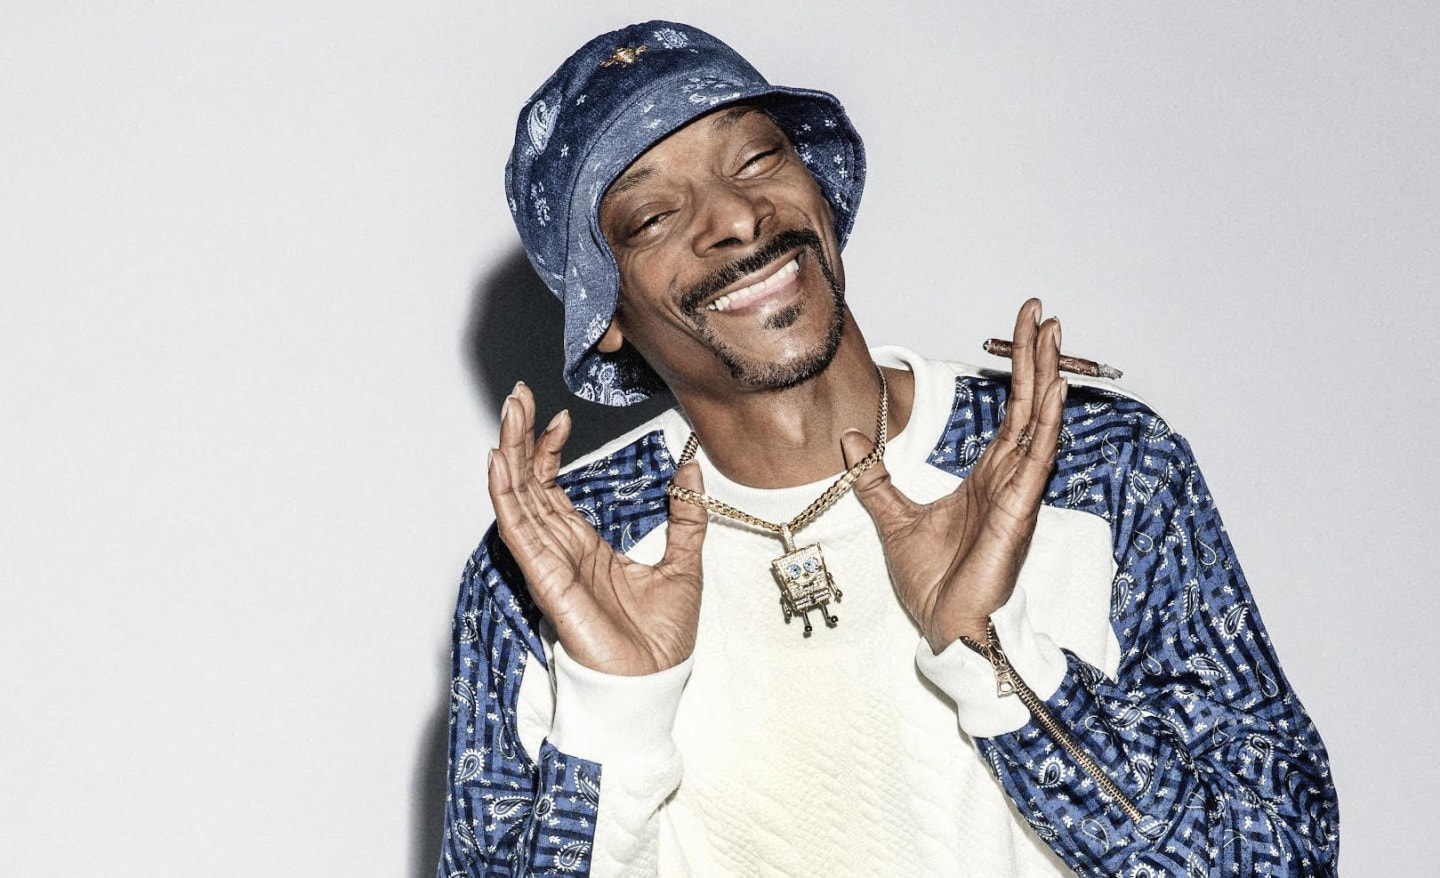 Snoop Dogg Releasing Lullaby Album With His Greatest Hits For Babies